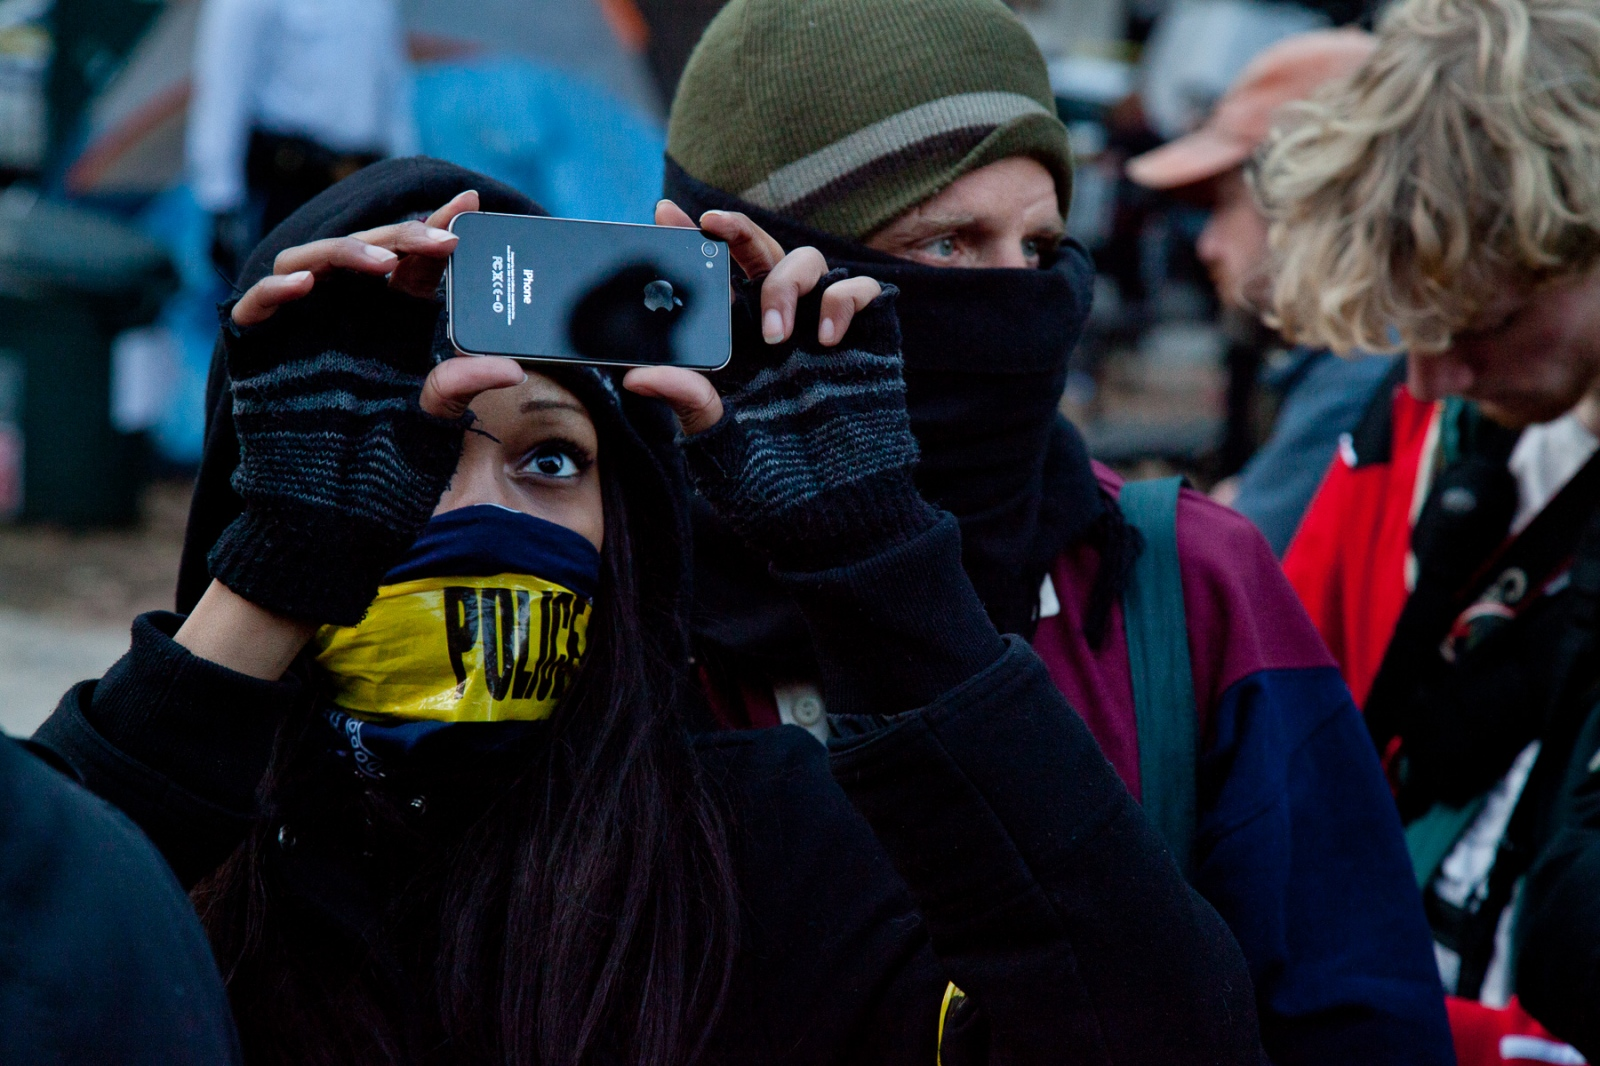 An Occupy D.C. protestor documents the action on her iPhone.